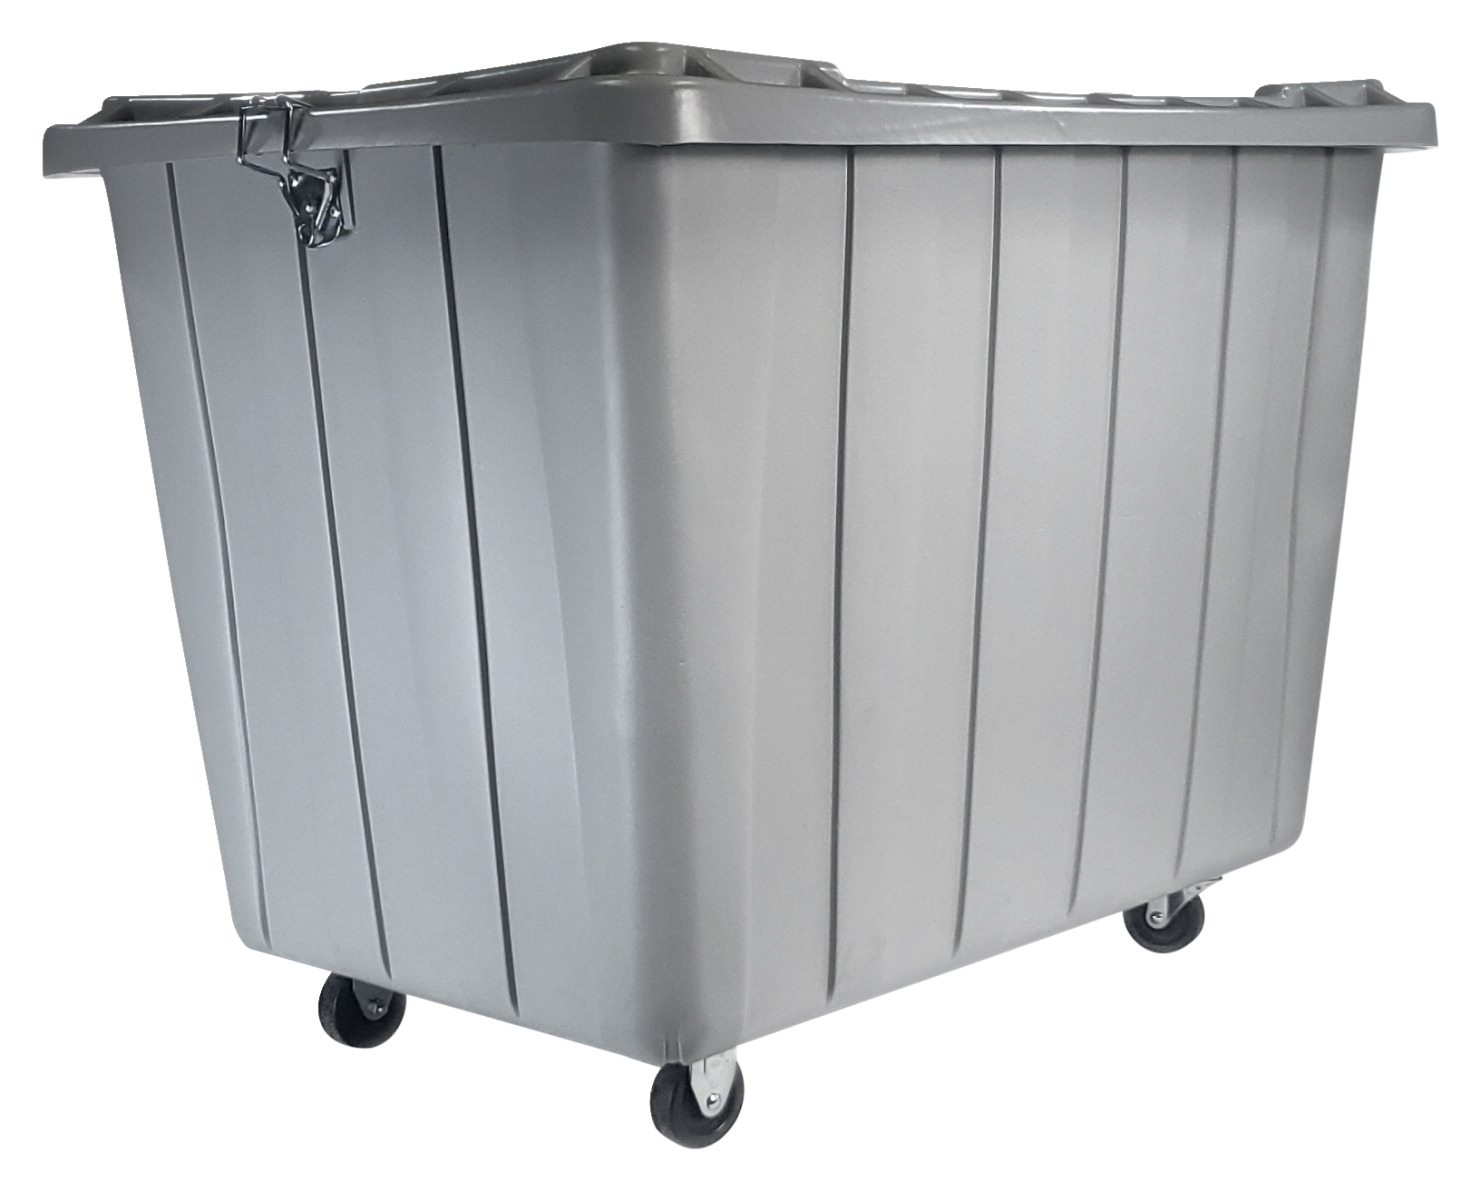 Shirley K S Heavy Duty Storage Container With Securing Lid And Caster Wheels Gray Soar Life Products